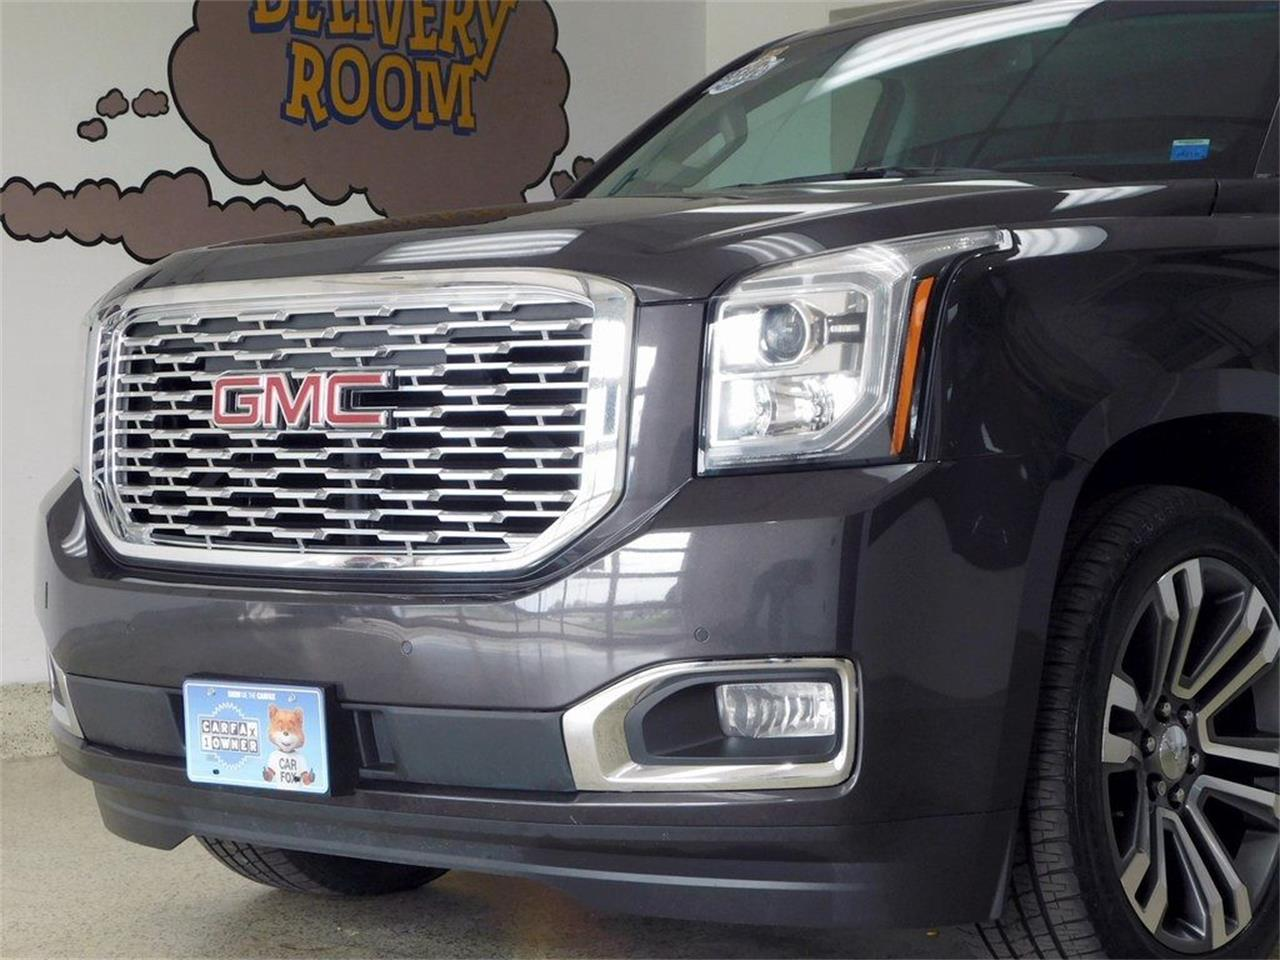 2018 GMC Yukon Denali (CC-1390990) for sale in Hamburg, New York